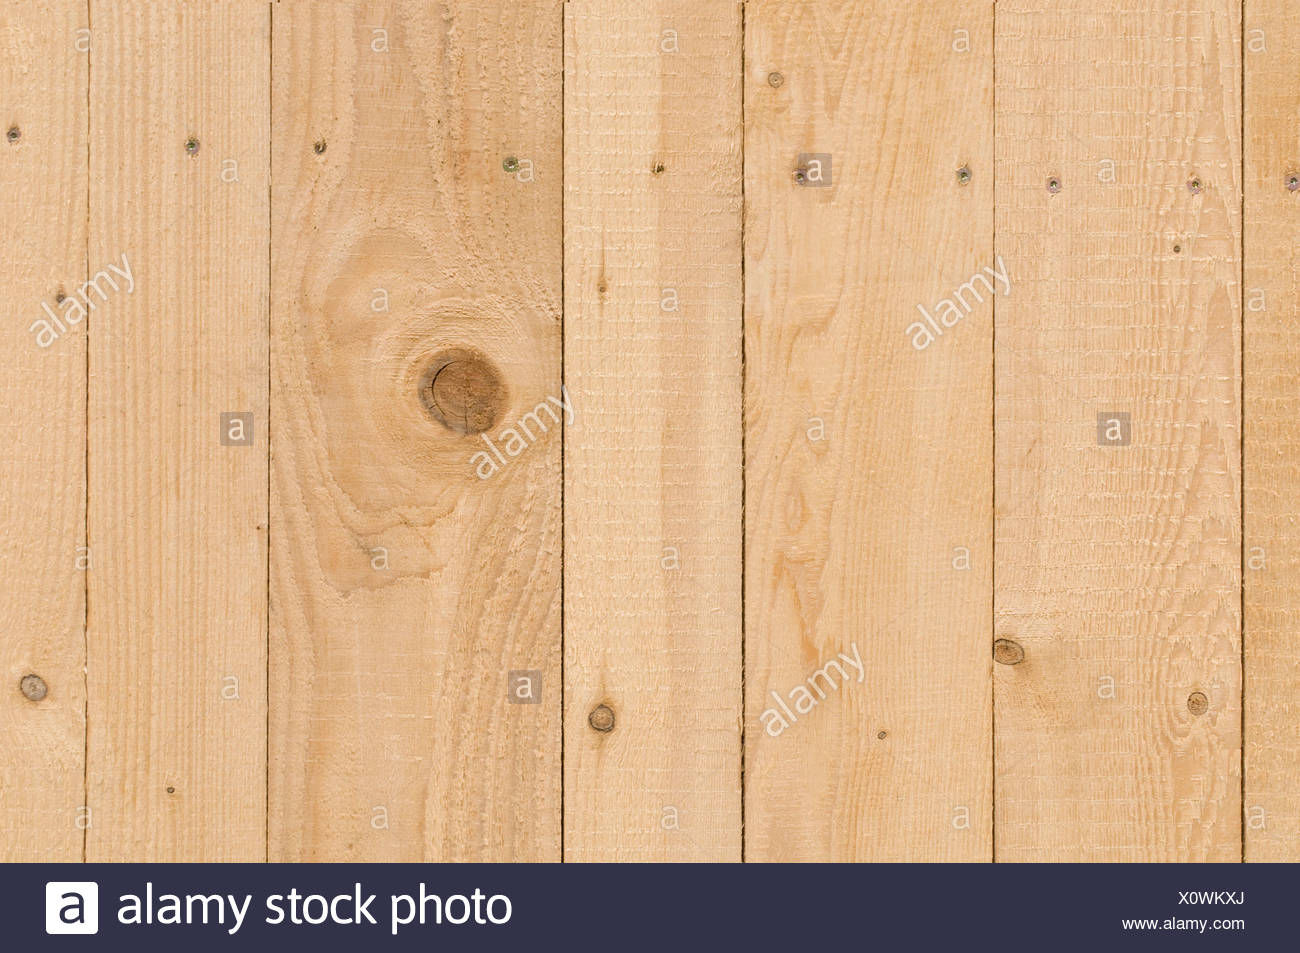 Detail, new plywood wall with screws, rough surface from the plane impact, background - Stock Image